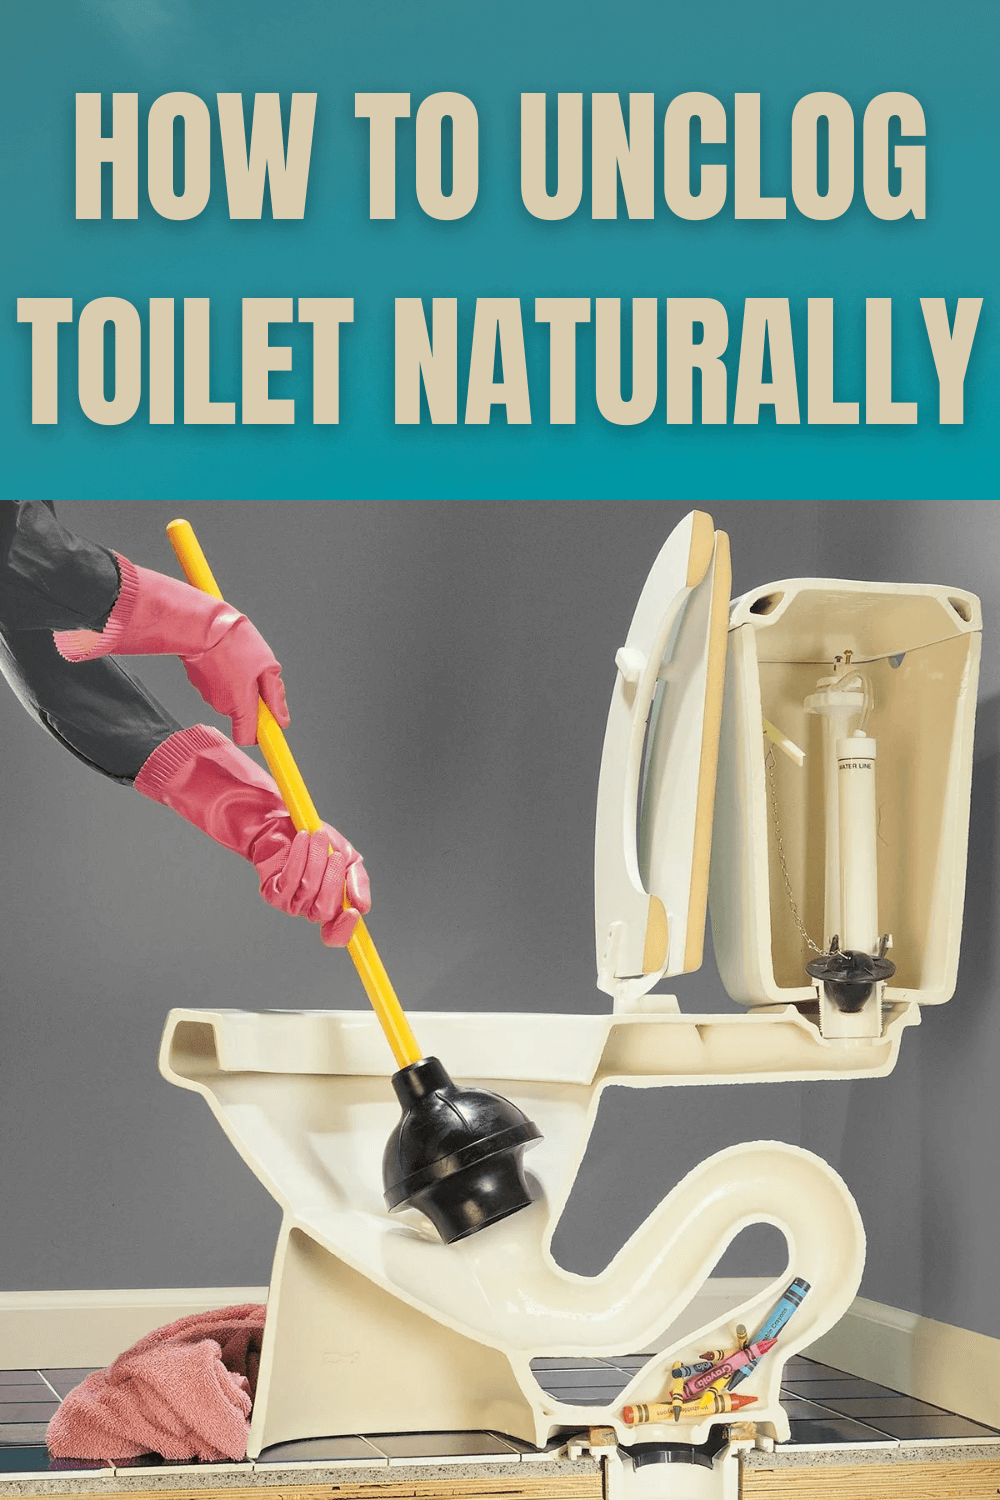 HOW TO UNCLOG TOILET NATURALLY